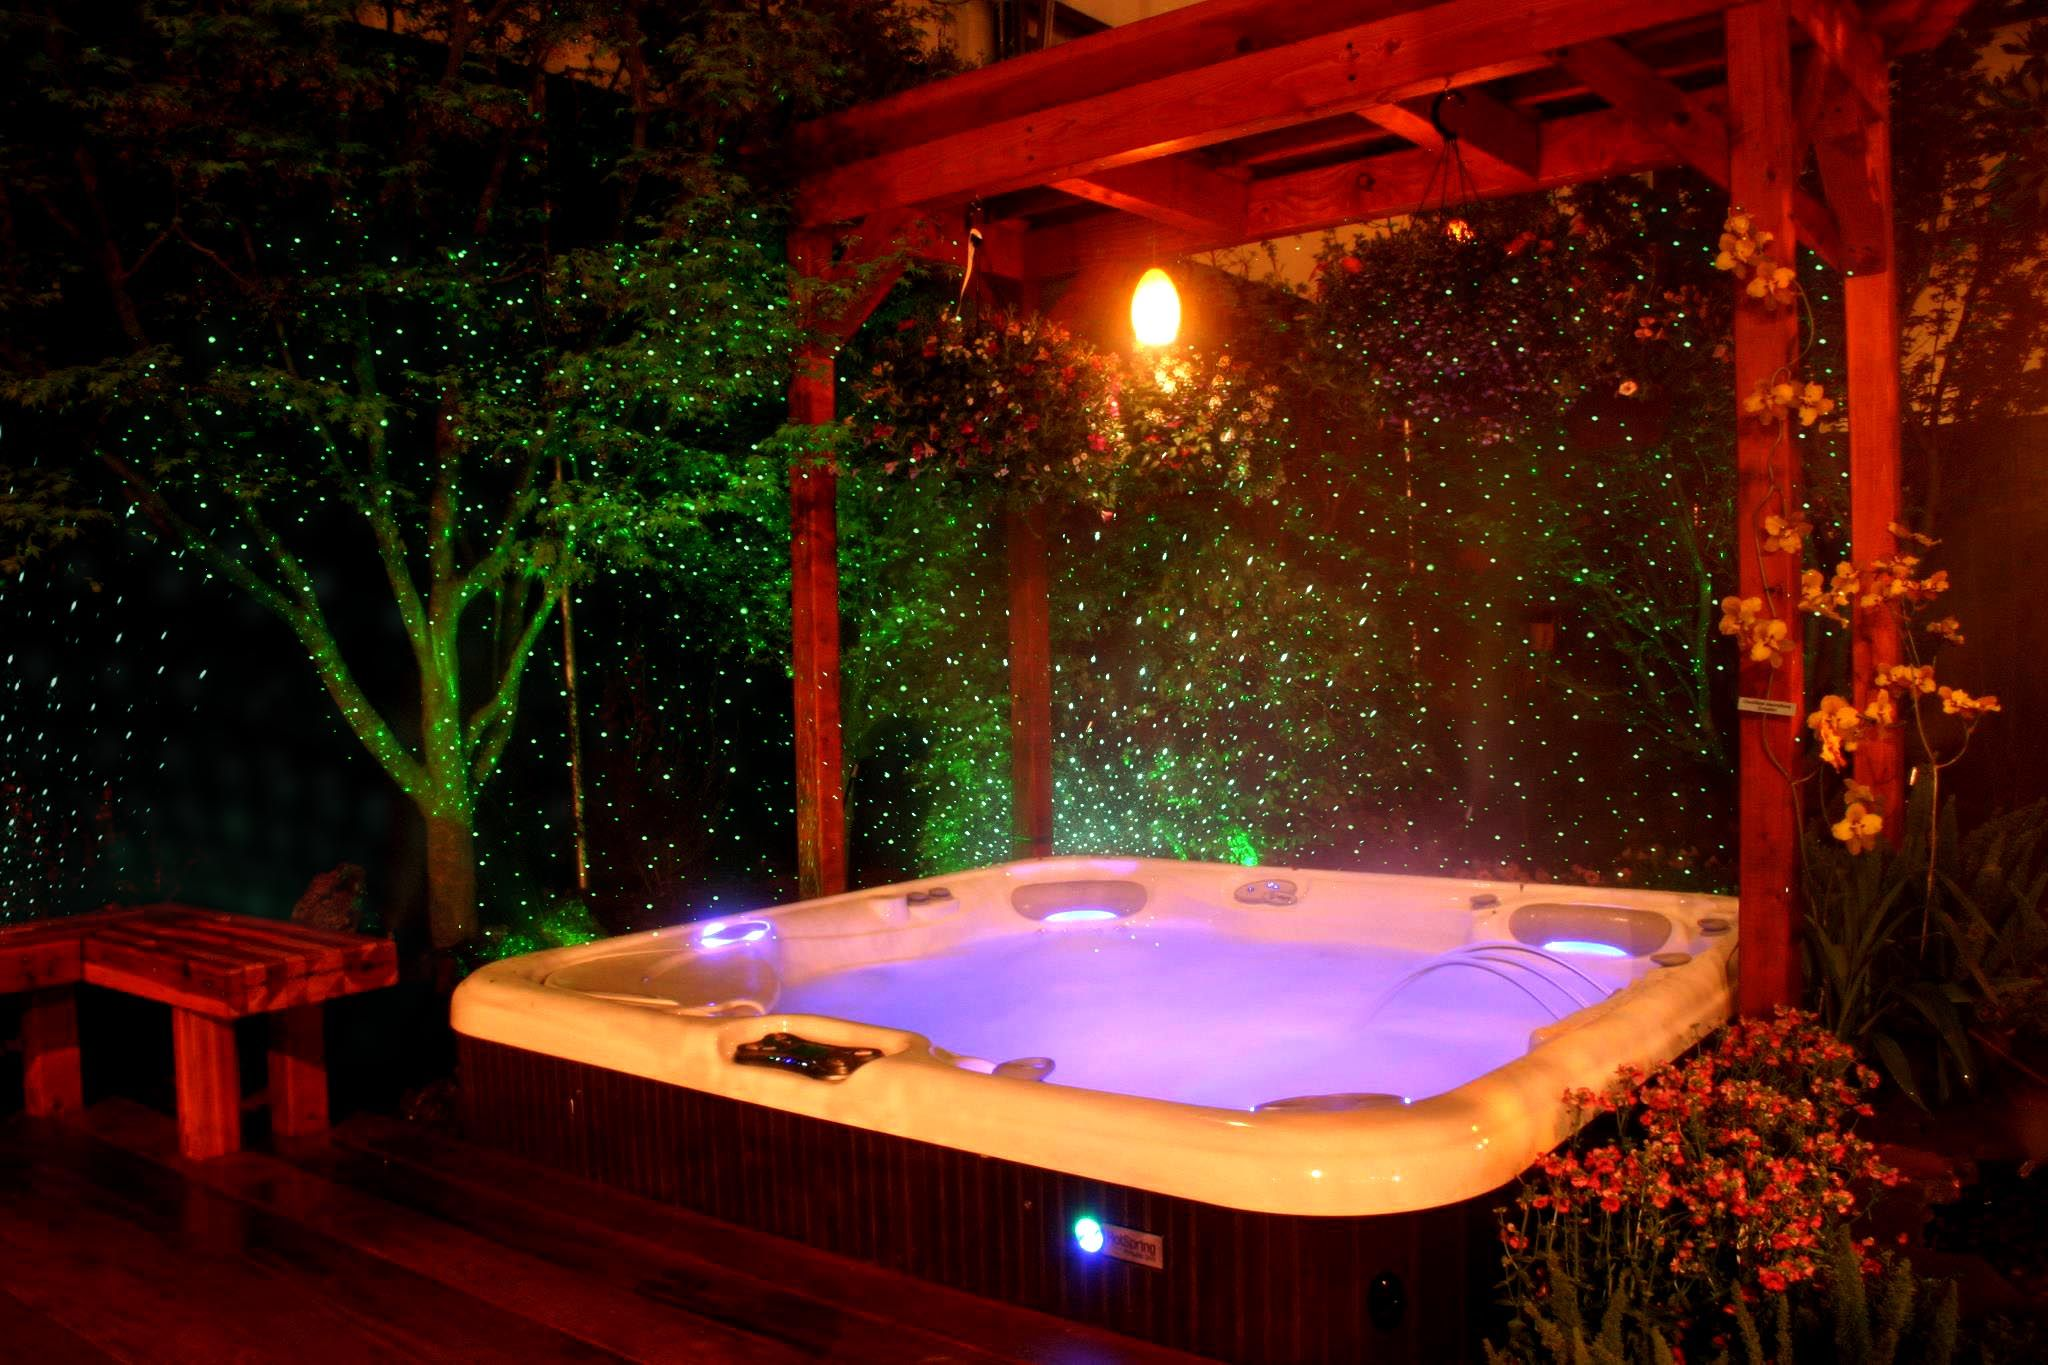 Green FireFly Laser Light for Hot Tub